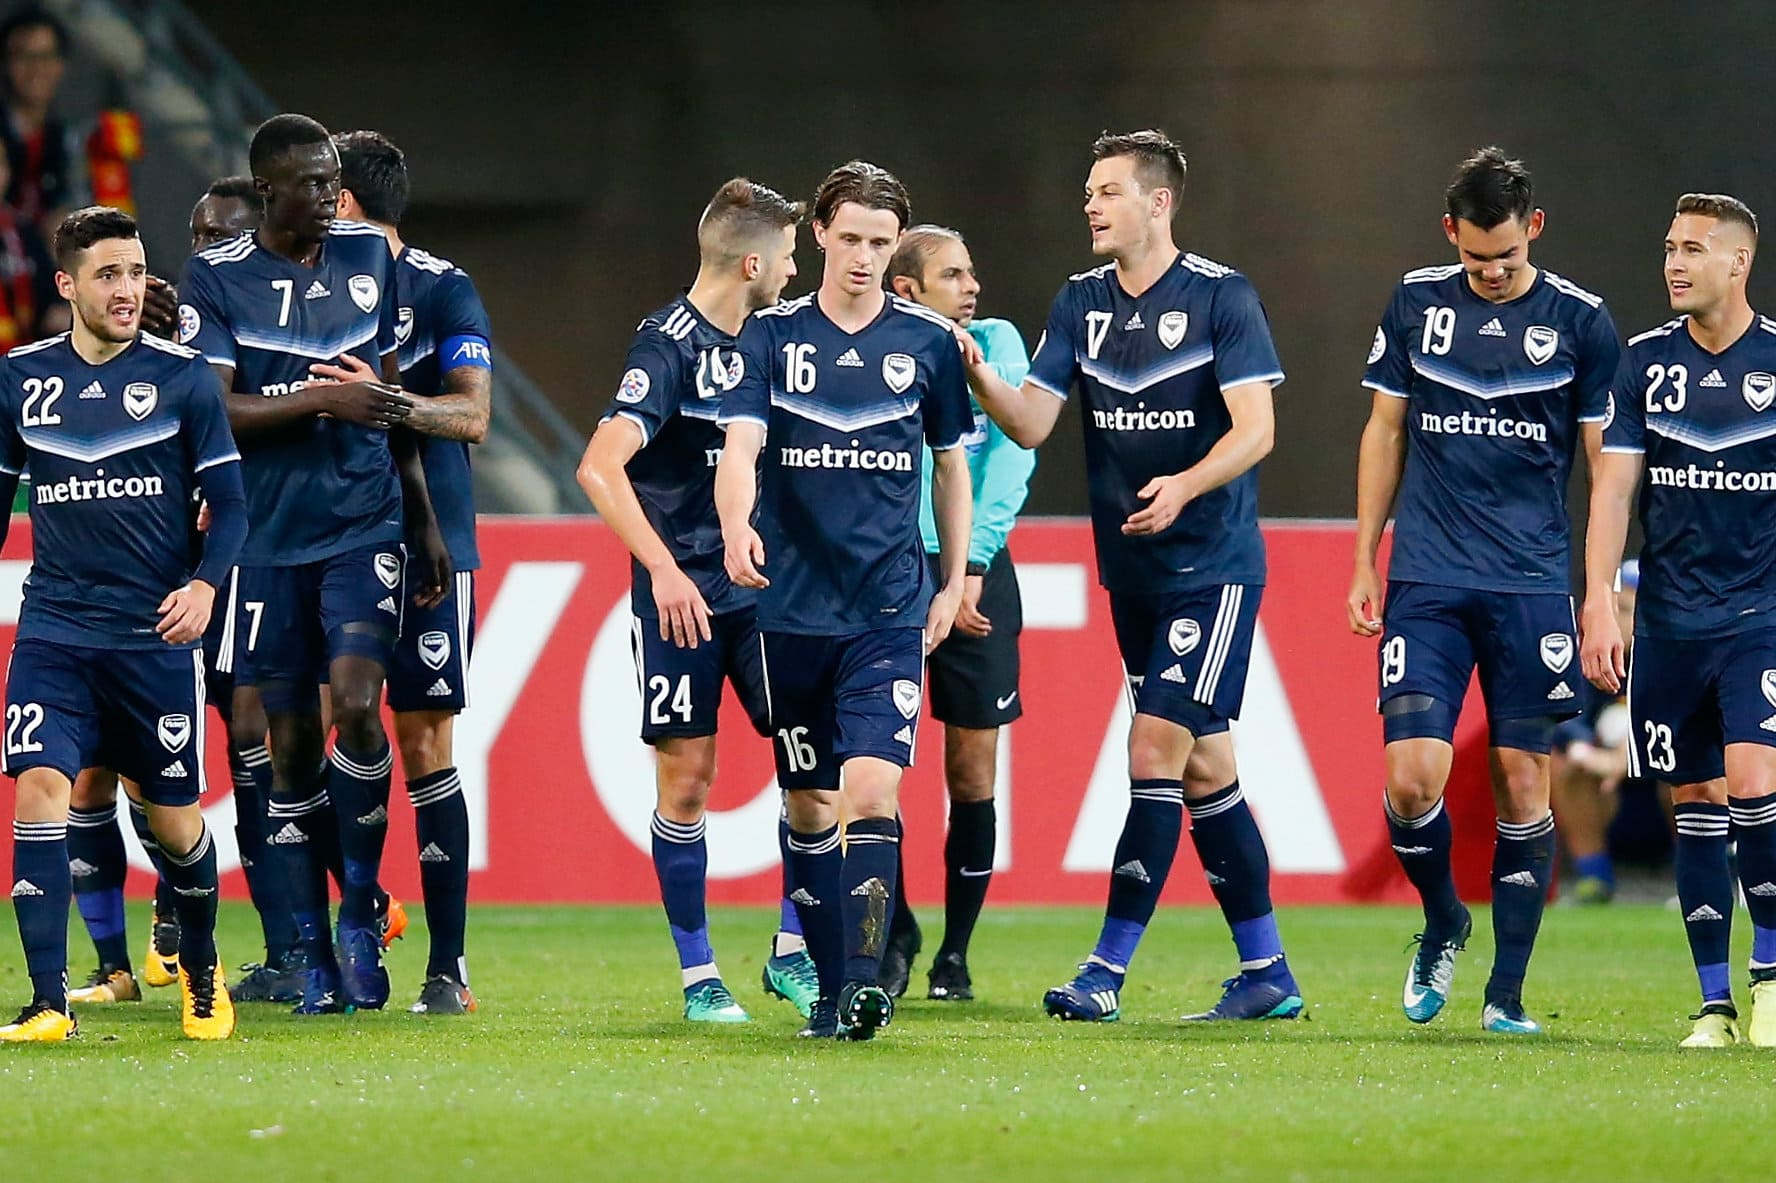 soi-keo-melbourne-victory-vs-central-coast-vao-13h-ngay-4-4-2020-1